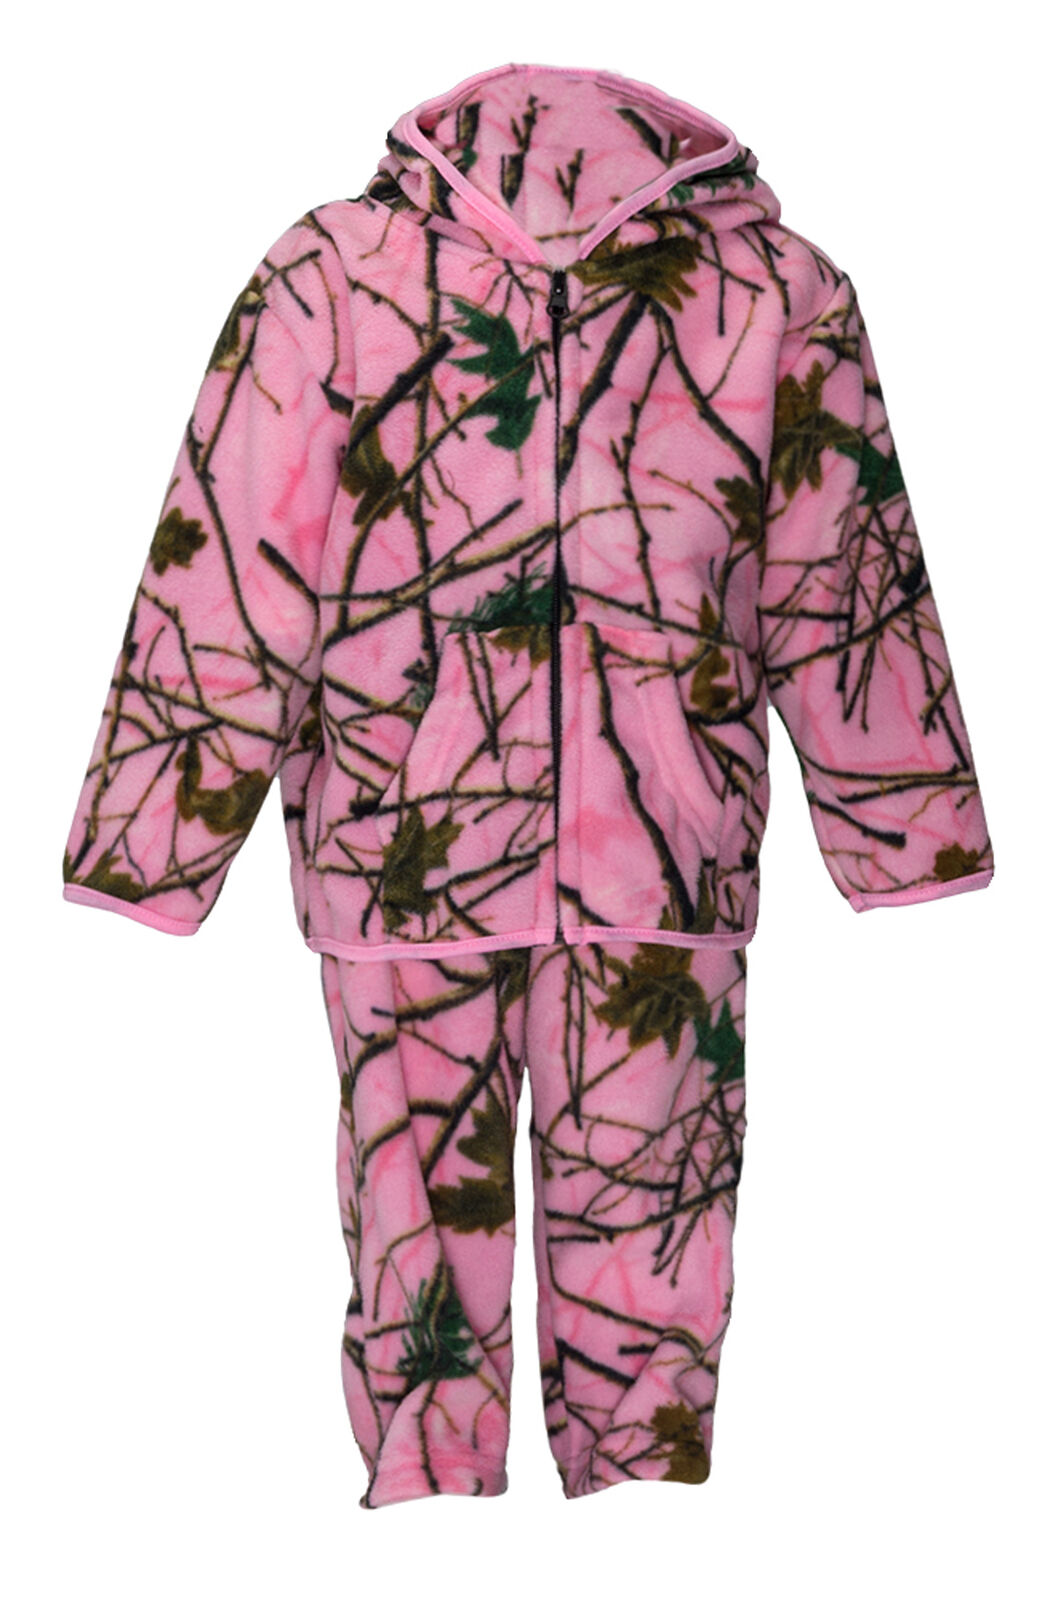 Trail Crest Baby Toddler Hooded Tunic Dress Highland Timber Pink Camo 5T